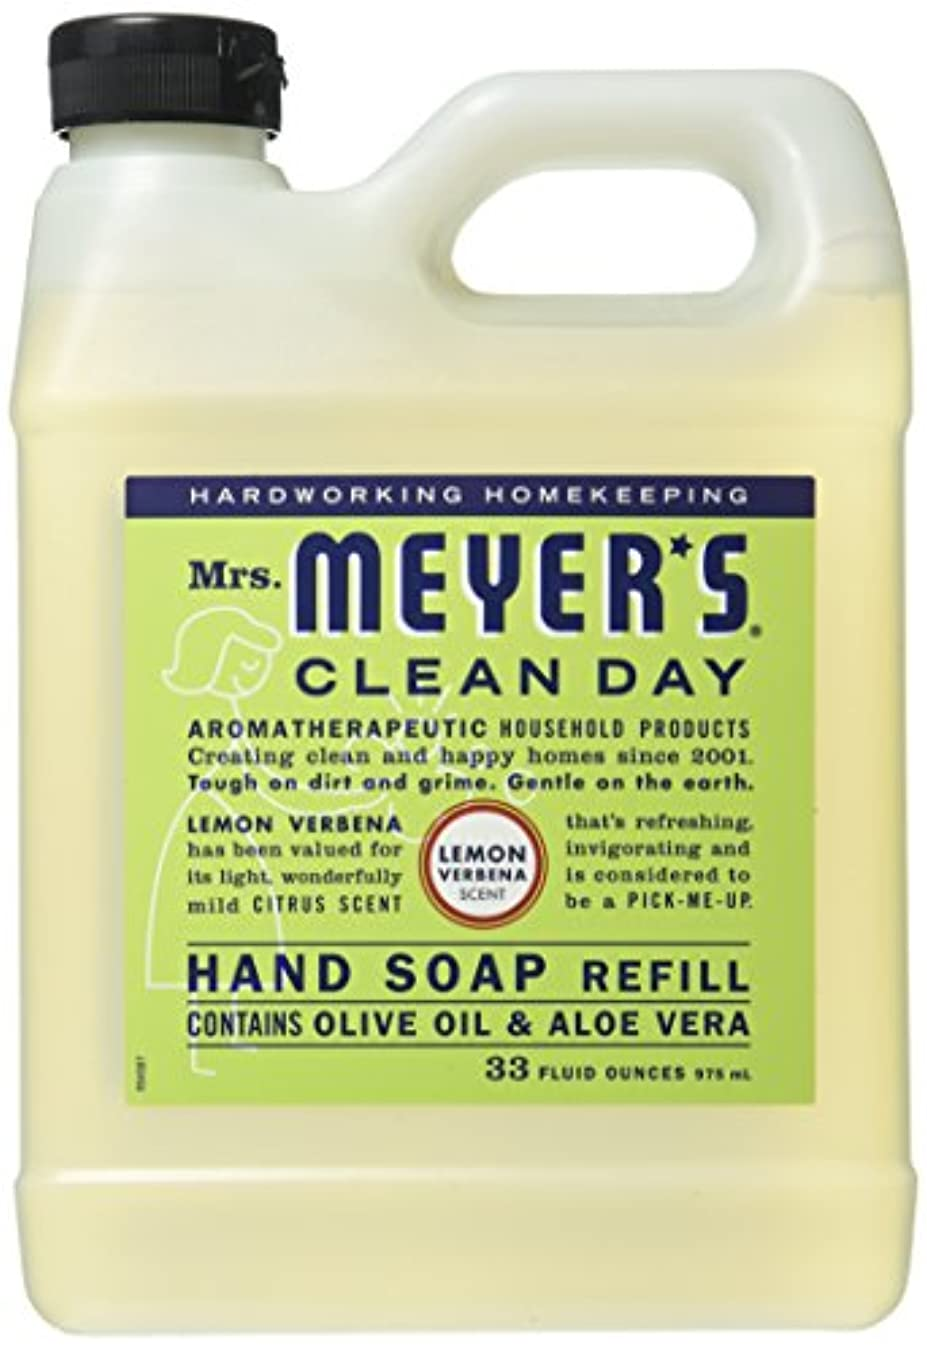 未知の入札ミュートMrs. Meyer's Liquid Hand Soap Refill, Lemon Verbena, 33 Fluid Ounce by Mrs. Meyer's Clean Day